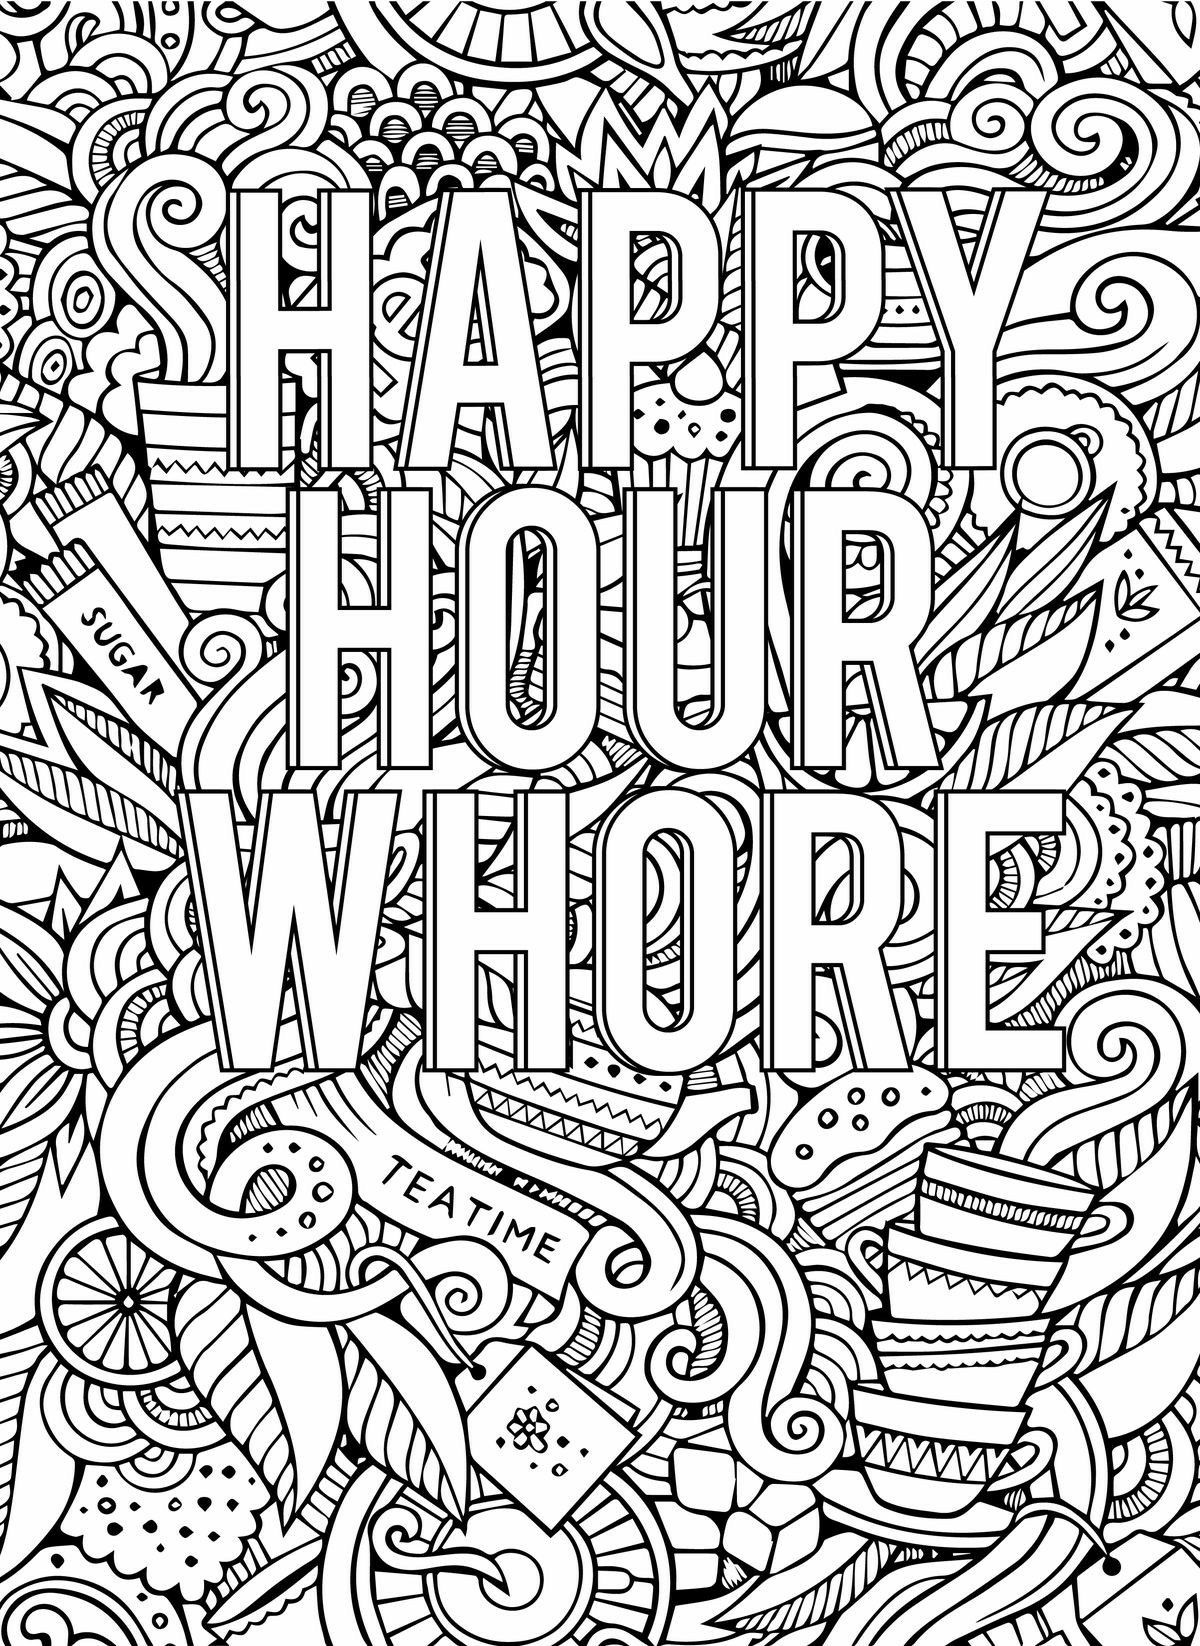 Pin By Julie Cheatham On Colorin Swear Word Coloring Book Words Coloring Book Curse Word Coloring Book